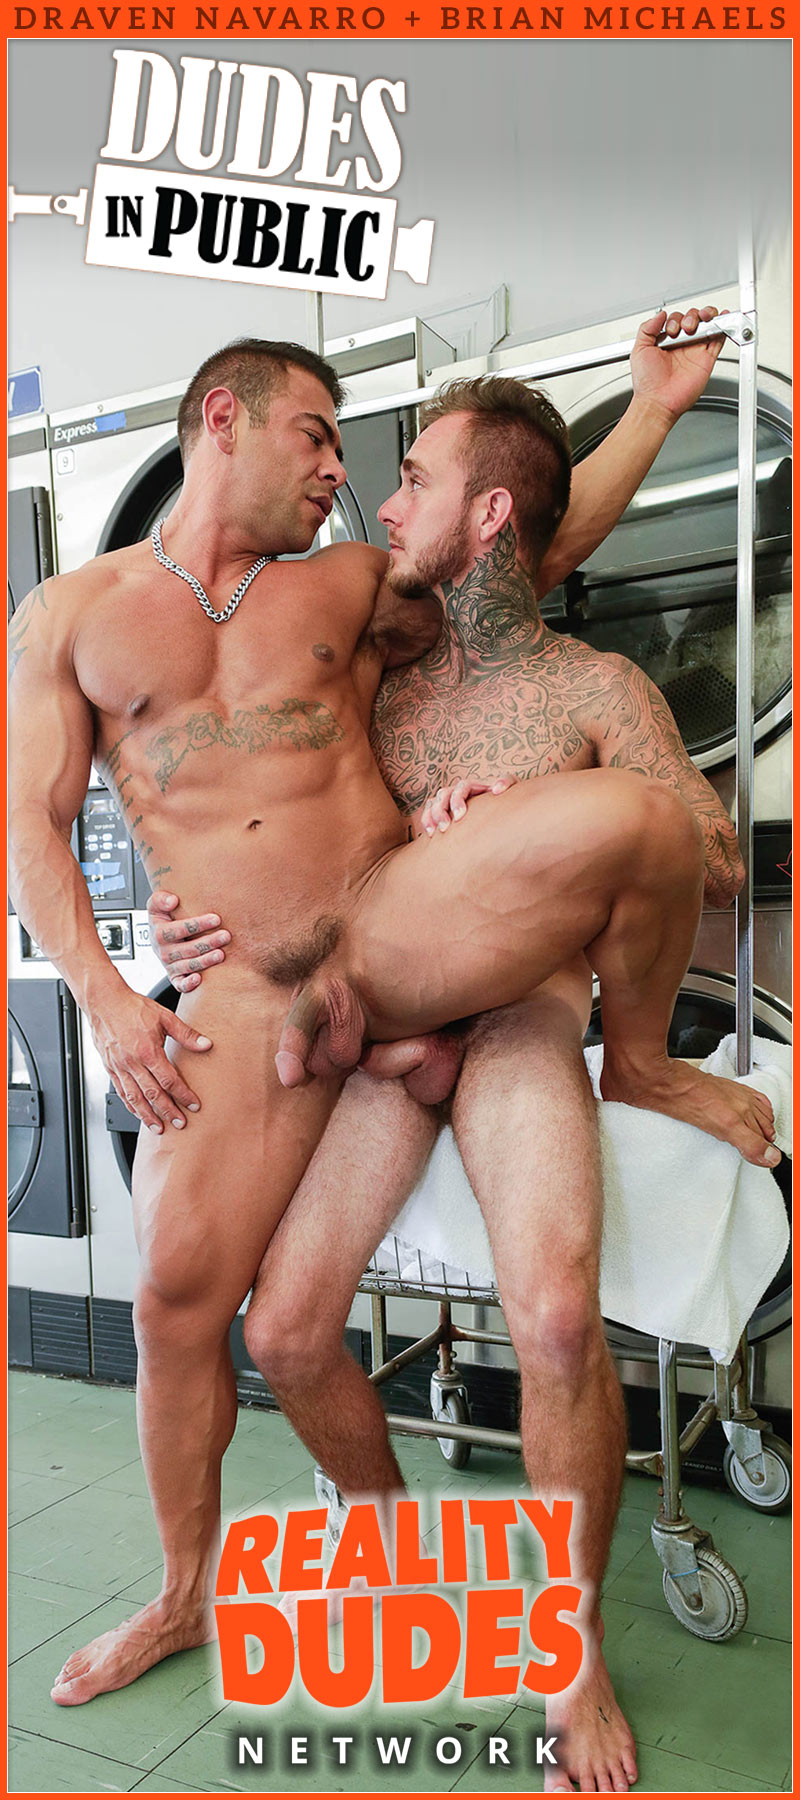 Dudes In Public, Scene 32: Hey Buddy, Got Change? (Brian Michaels Fucks Draven Navarro)